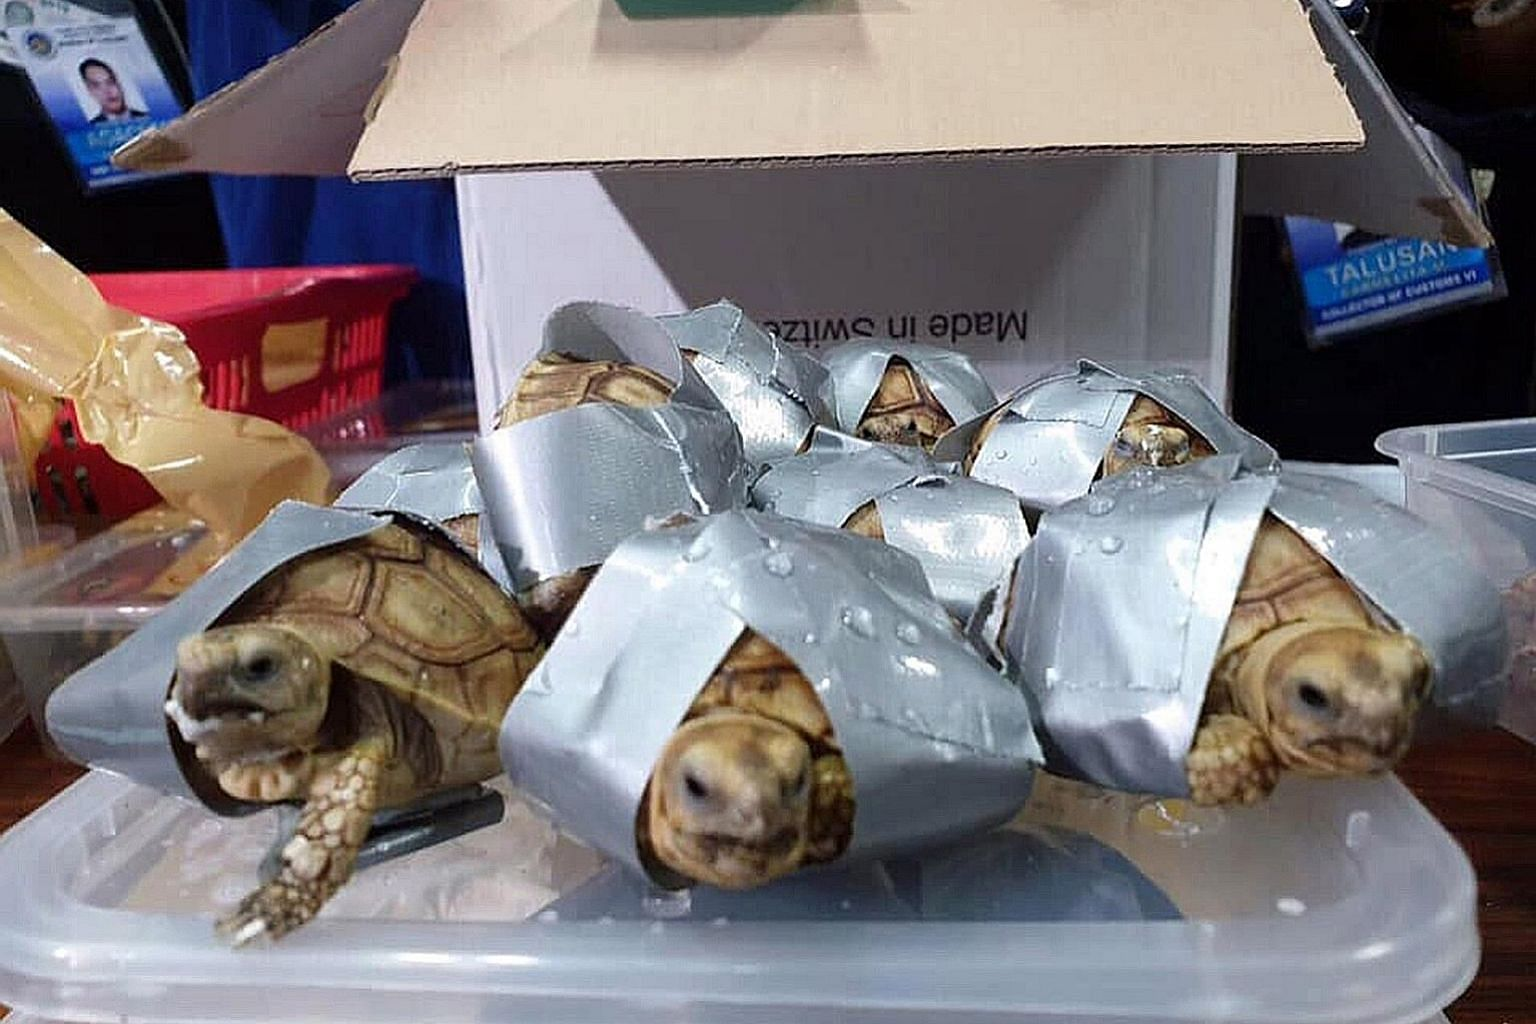 Some of the turtles and tortoises had been restrained with duct tape to immobilise them when they were found at Manila's airport on Sunday in the luggage of a Filipino passenger who had arrived from Hong Kong. The animals had been hidden among clothe